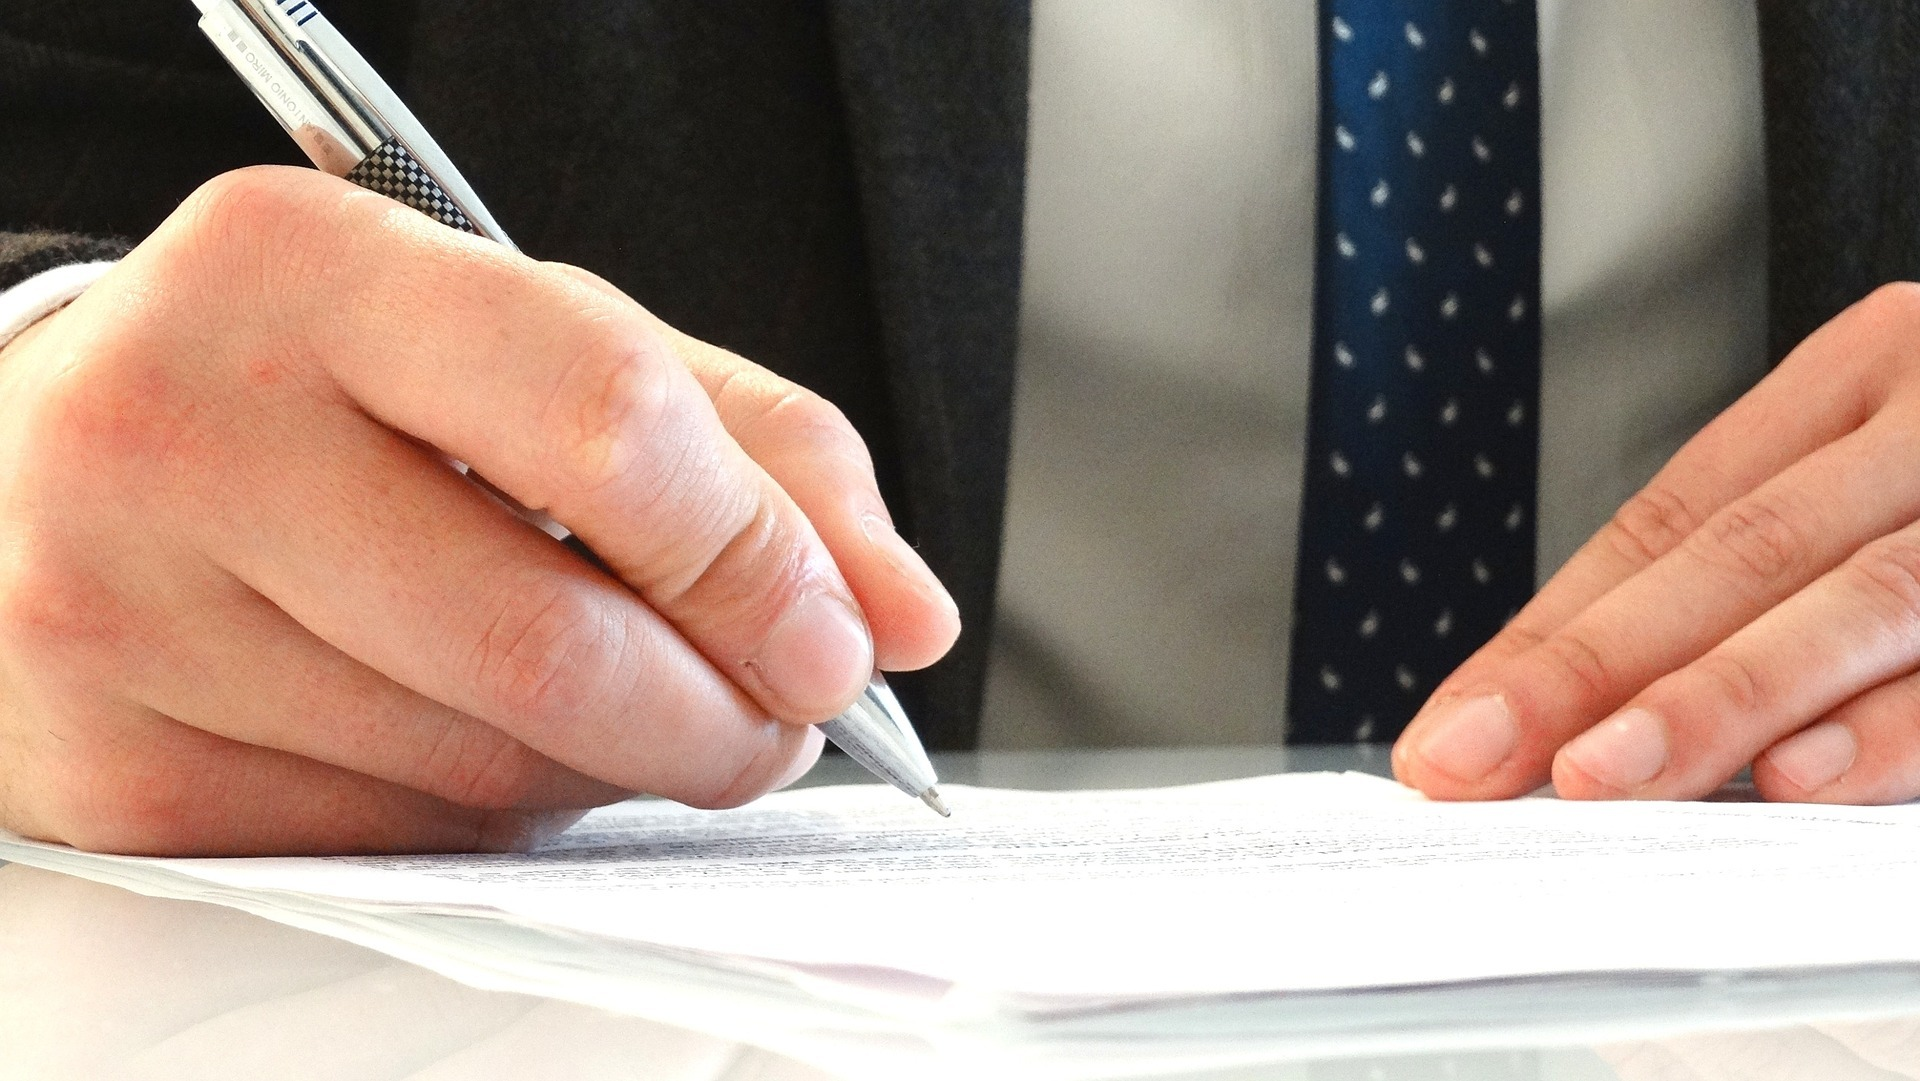 General Durable Powers of Attorney